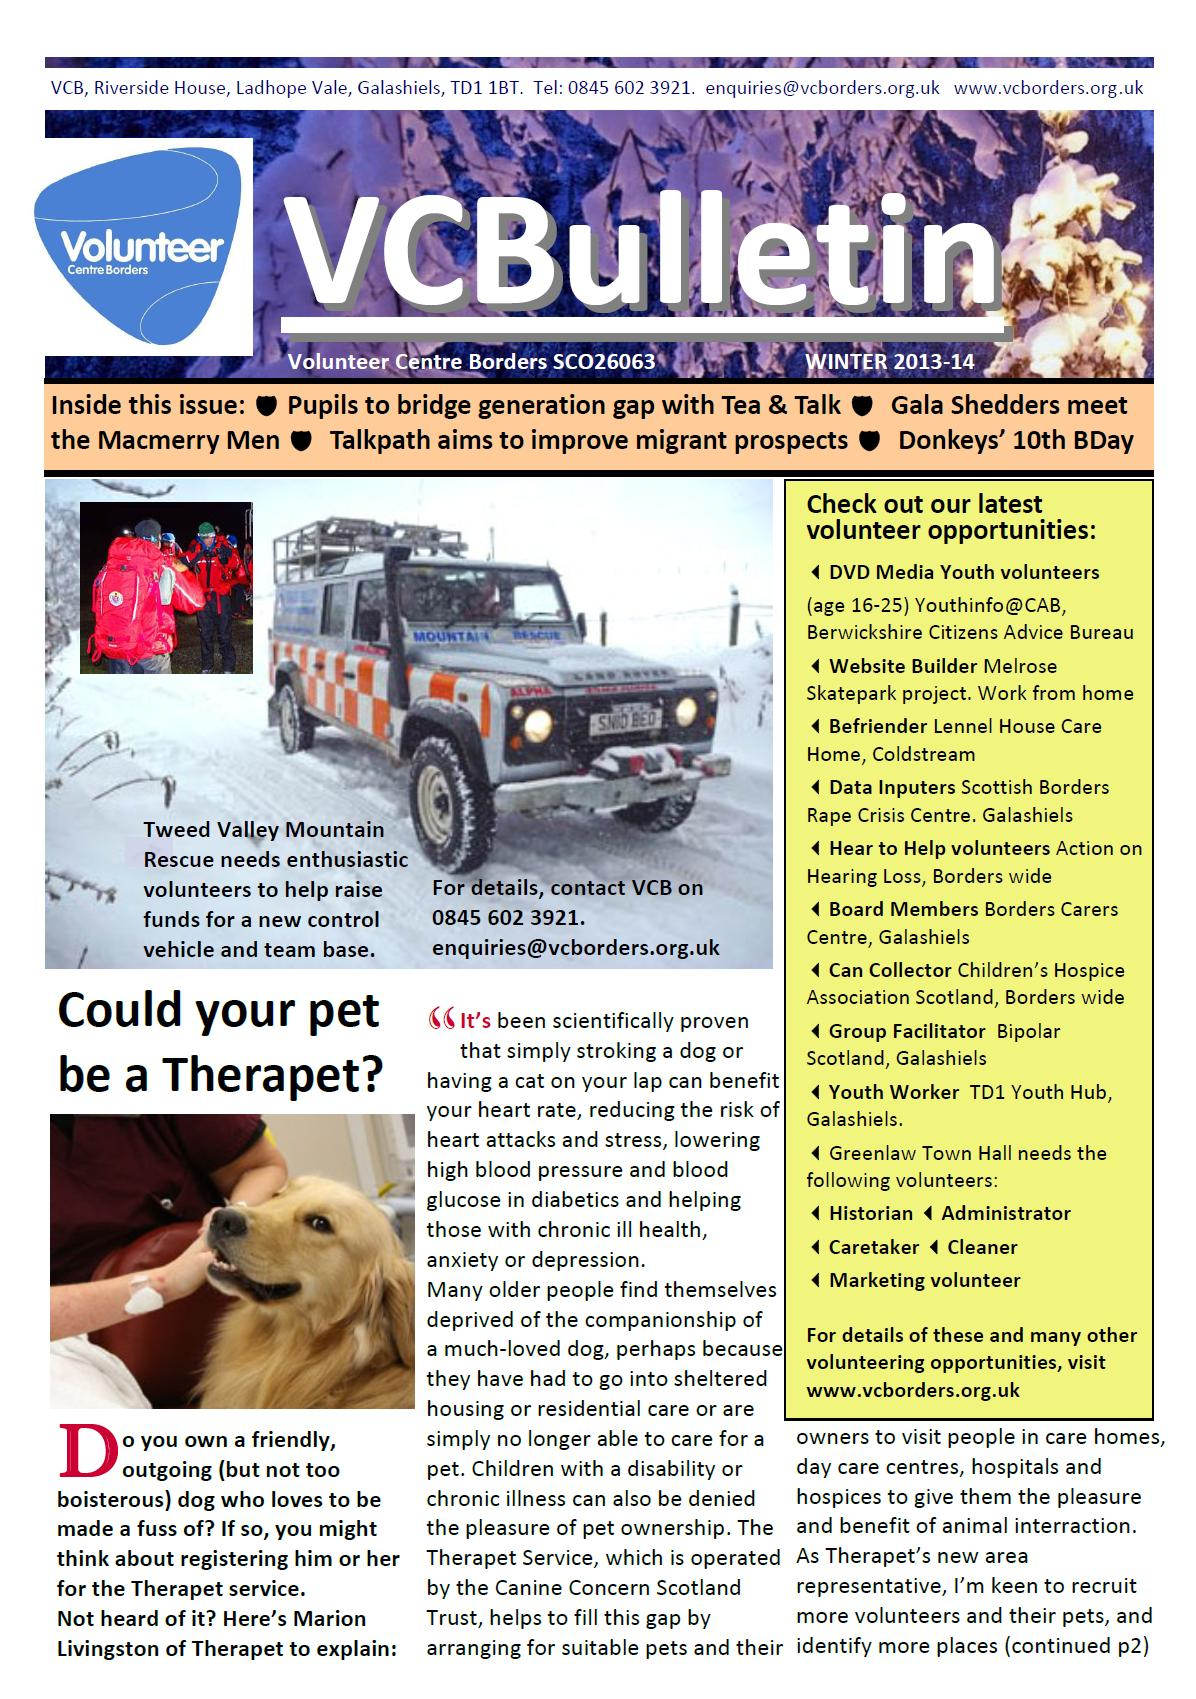 VBulletin Winter 13 14 Cover